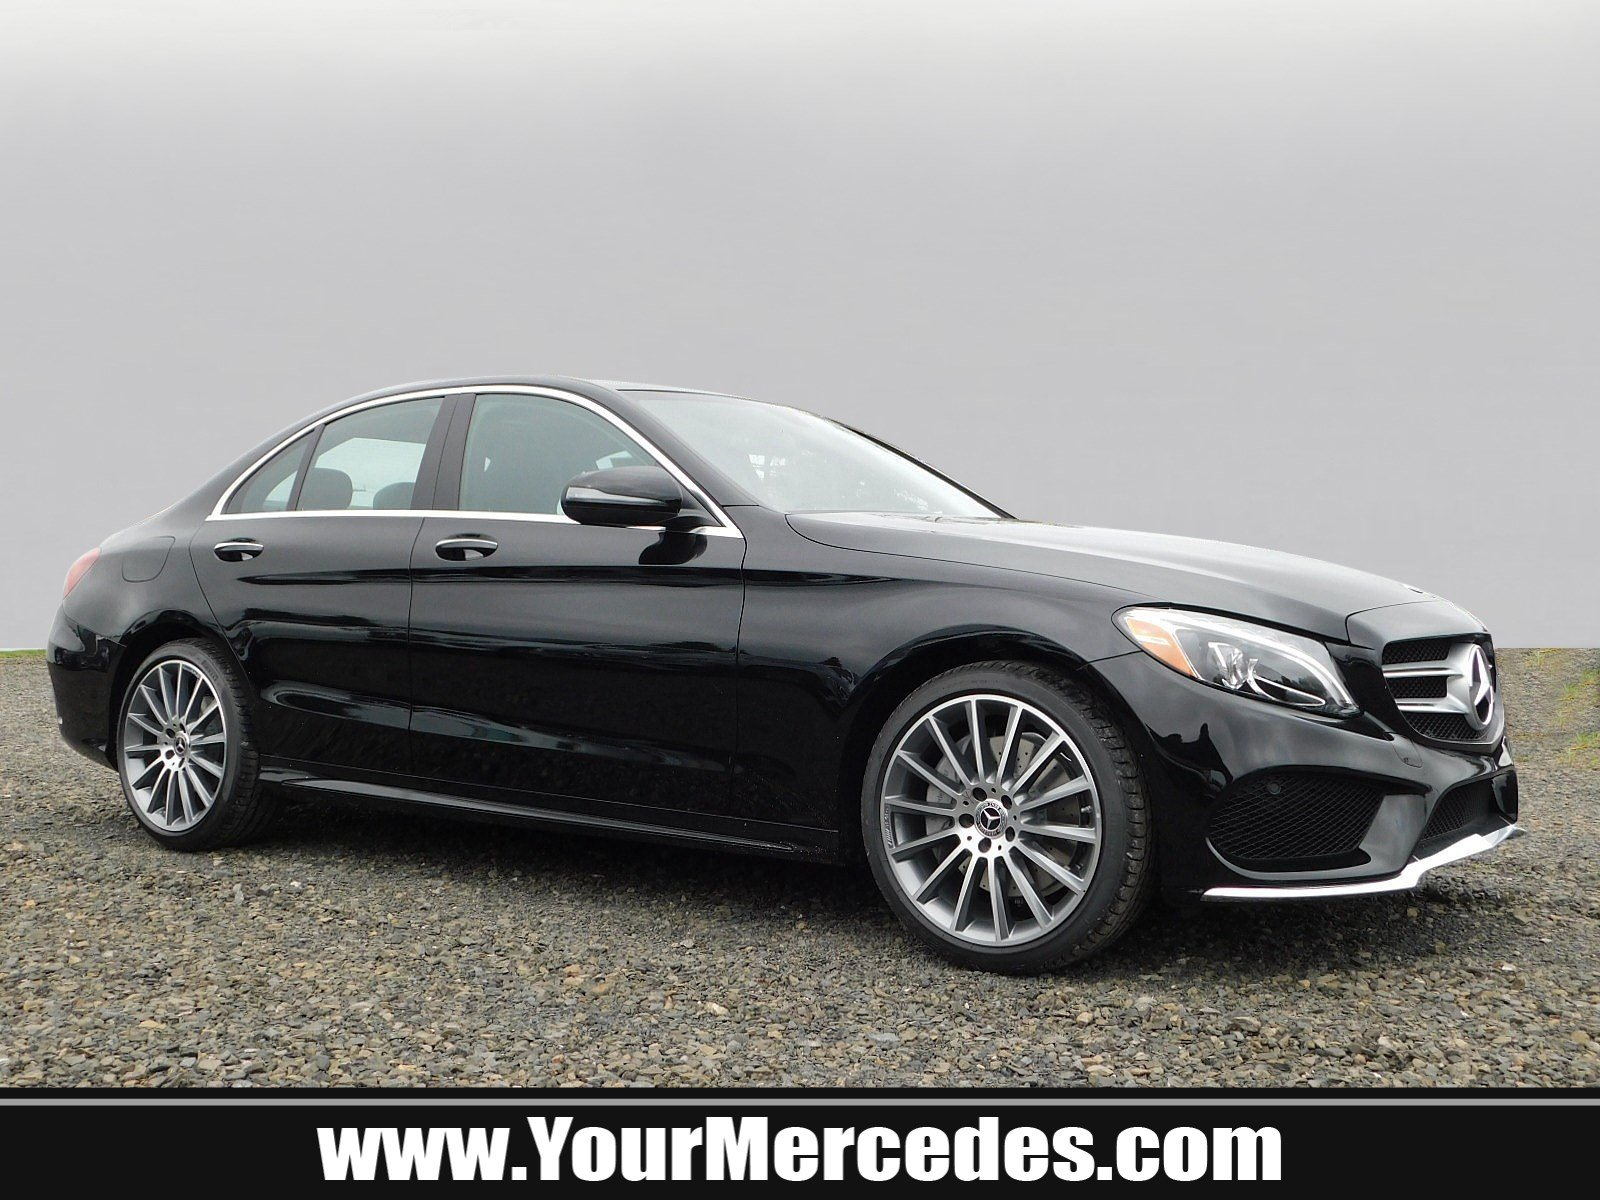 New 2018 Mercedes Benz C Class C 300 4dr Car in West Chester